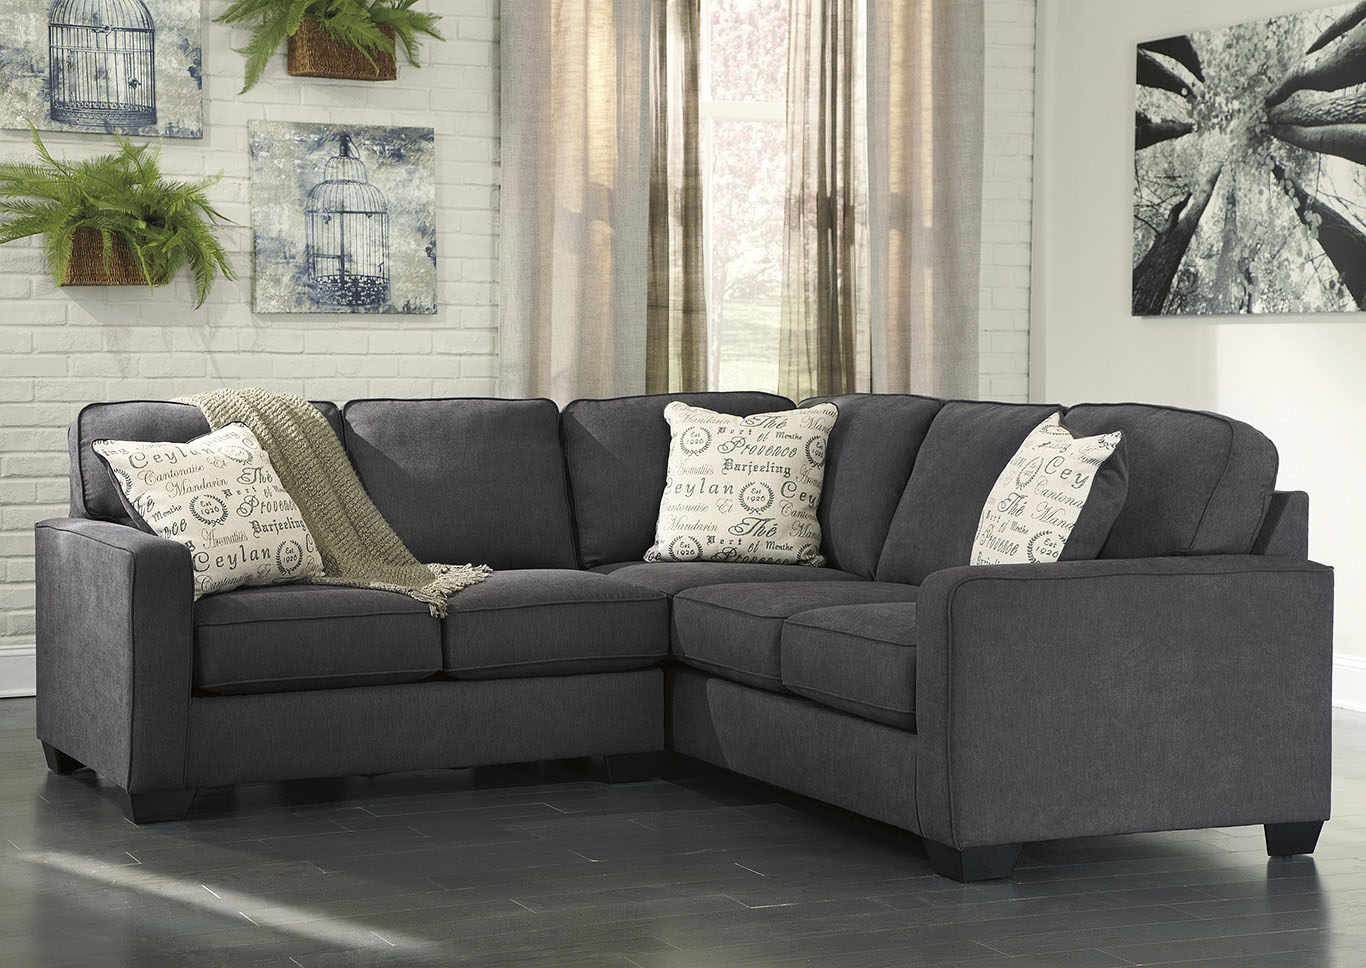 Alenya Charcoal RAF Sectional,Signature Design By Ashley